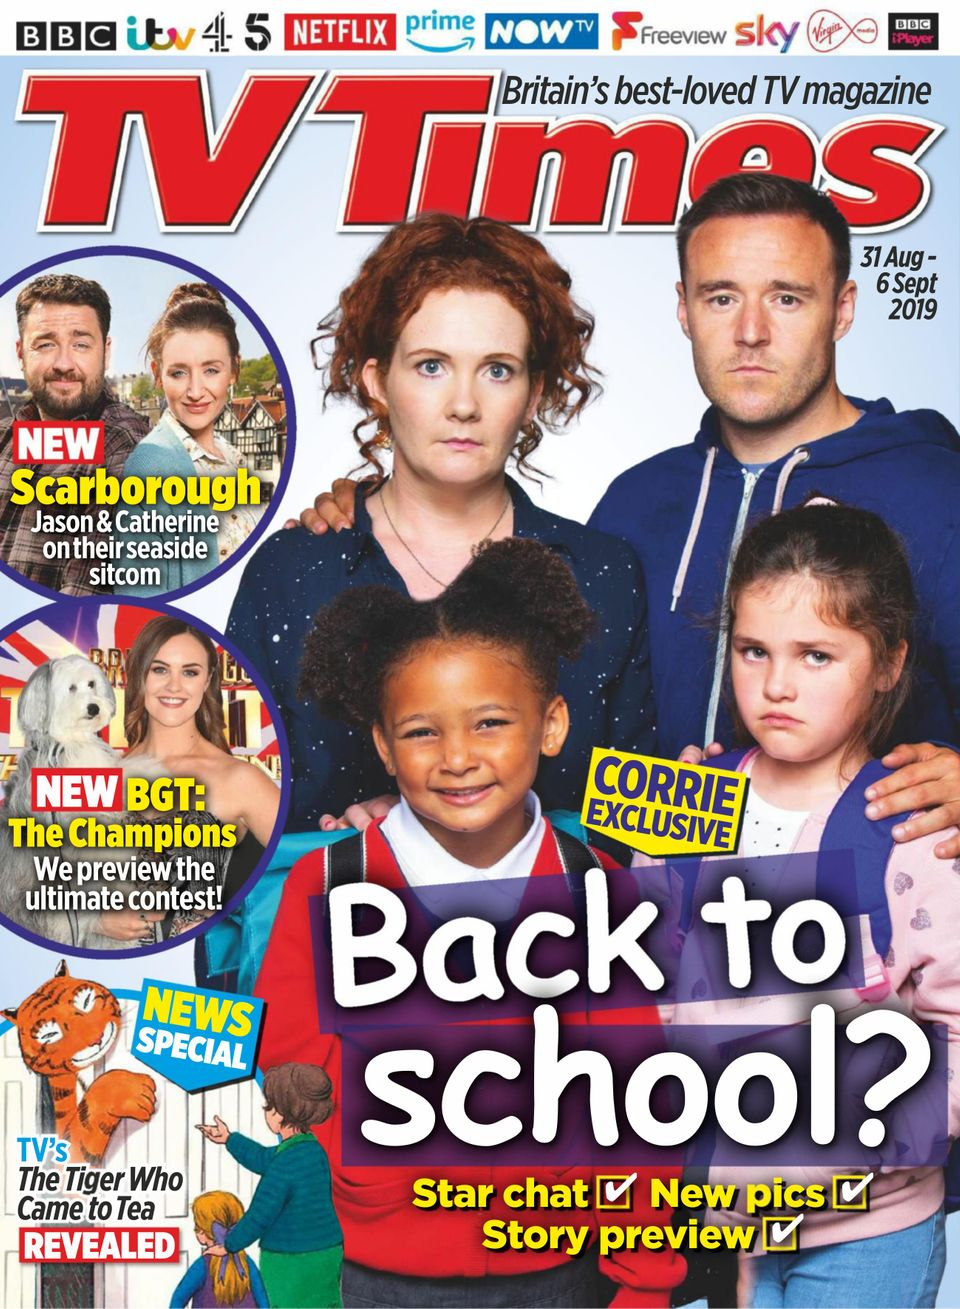 Get your digital copy of TV Times-August 31, 2019 issue